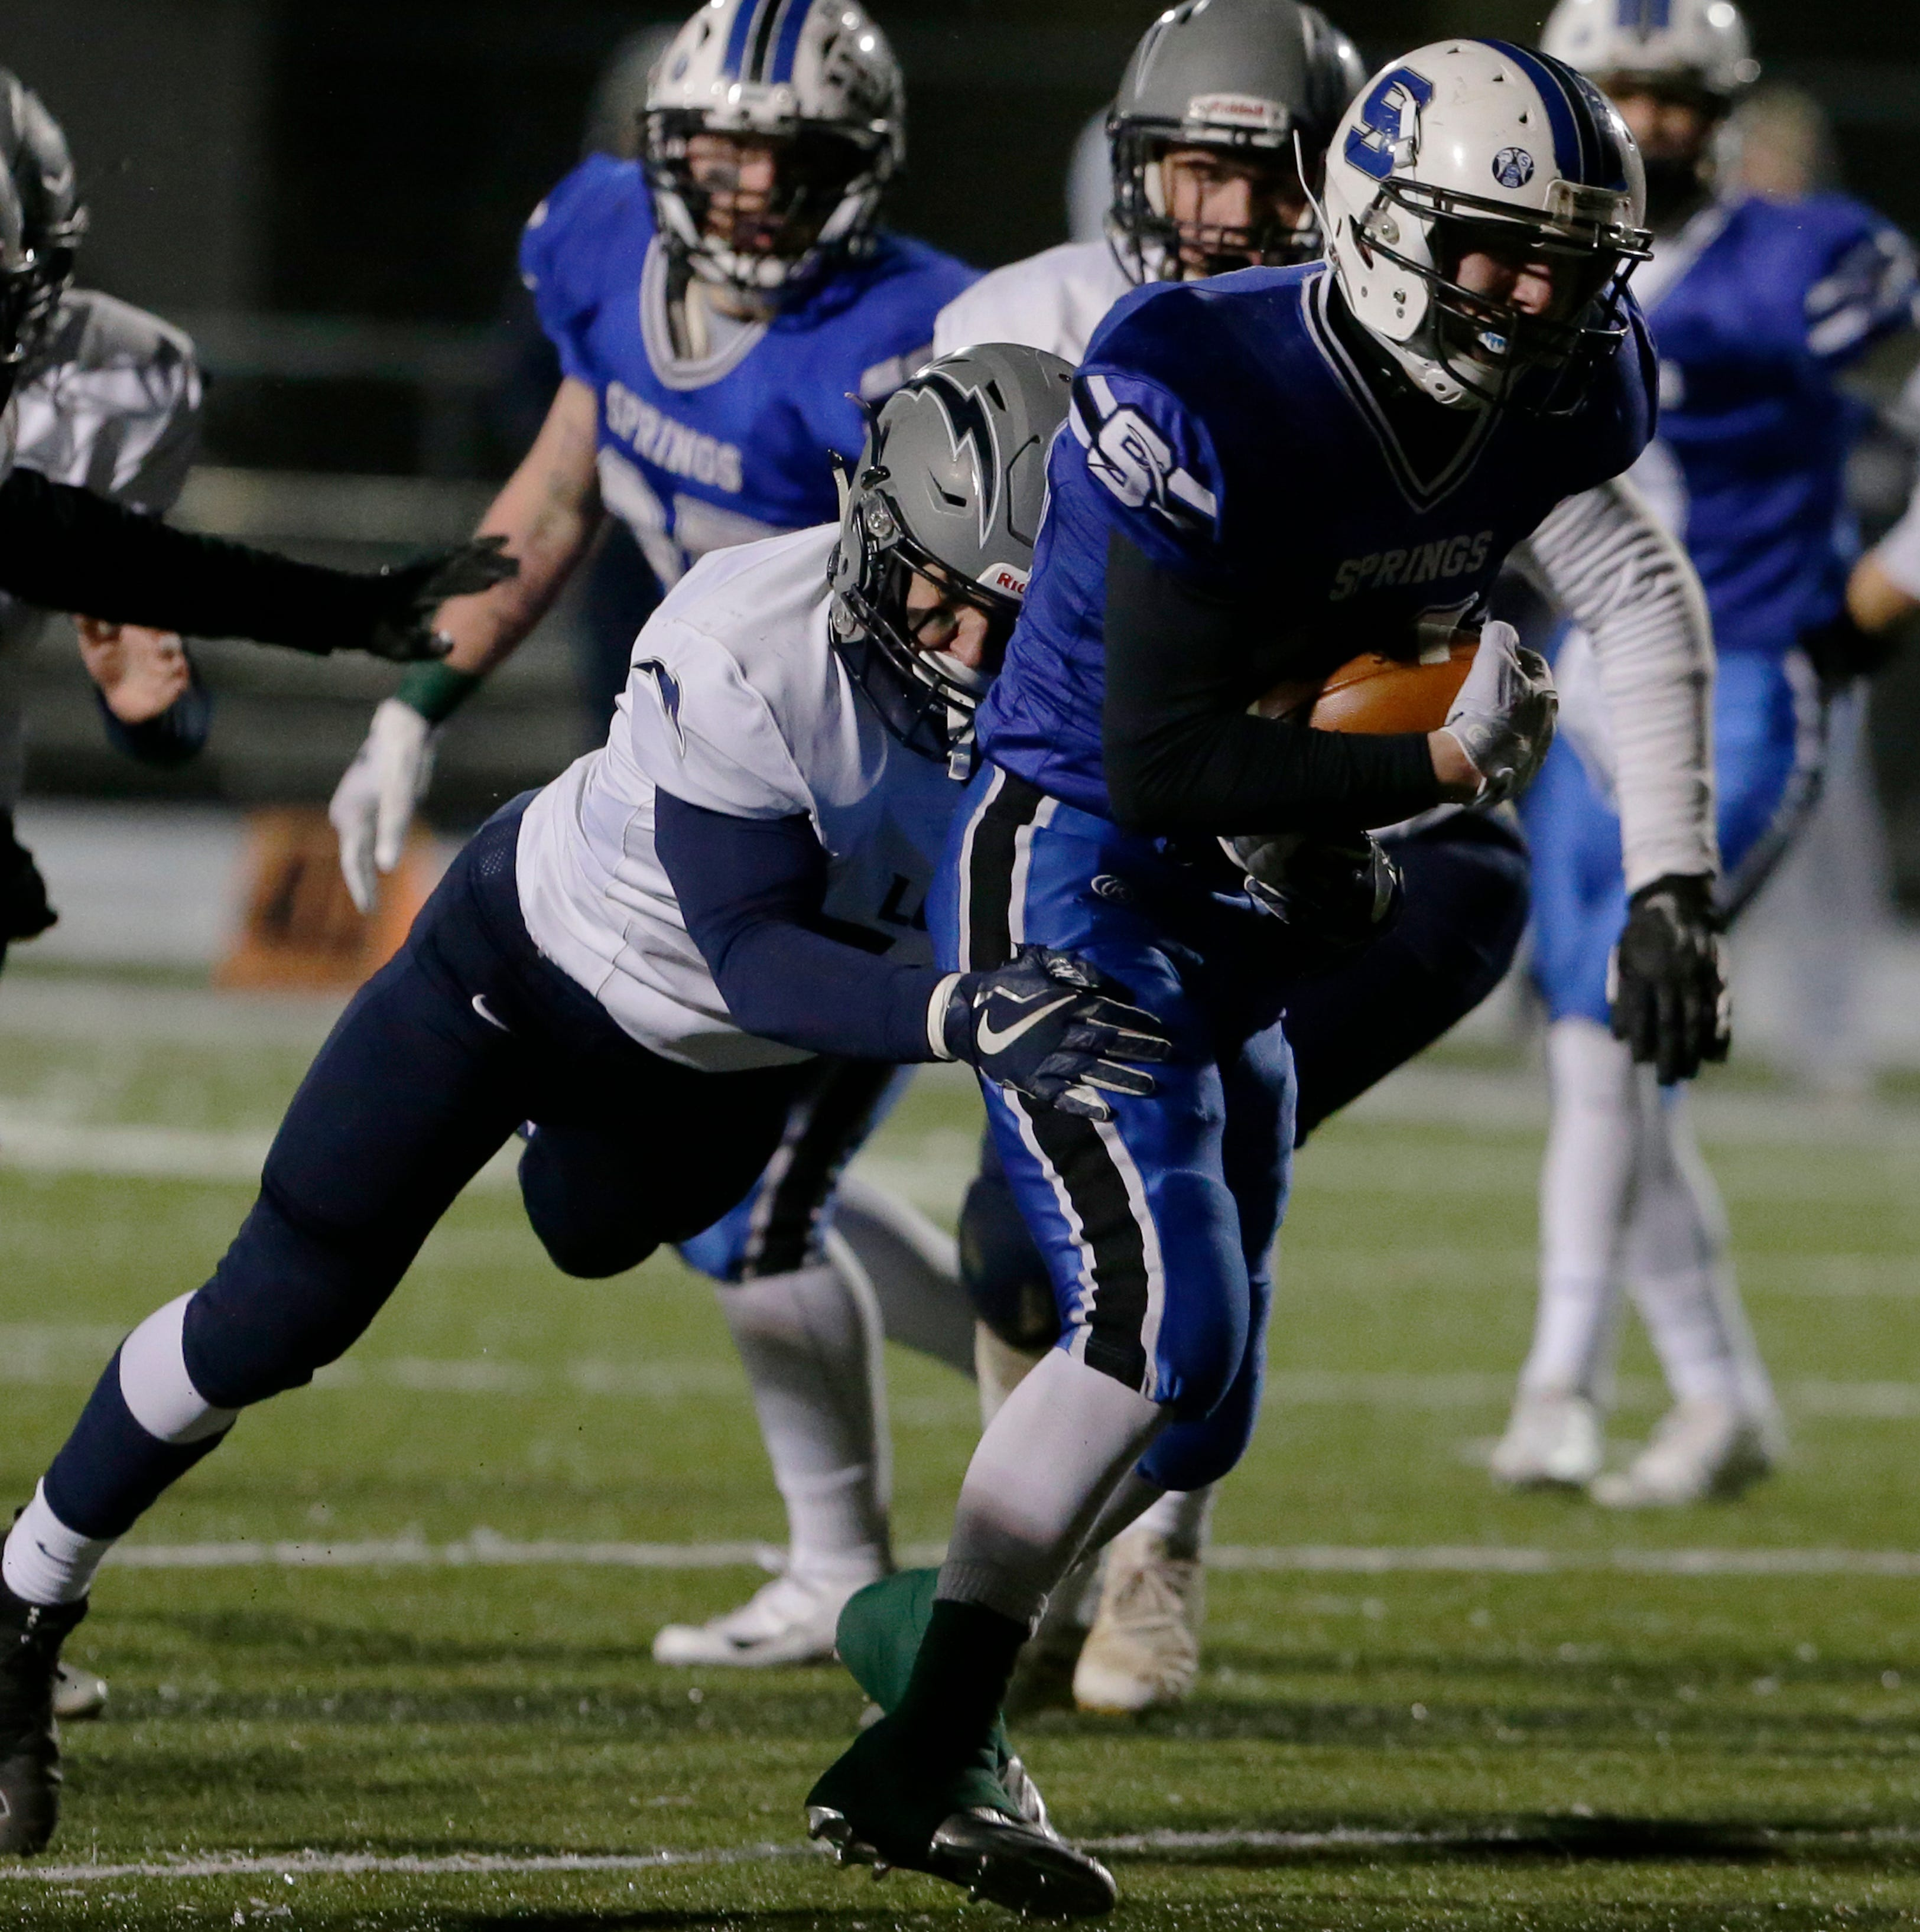 WIAA state football: St. Mary's Springs returns to Madison for Division 5 title game